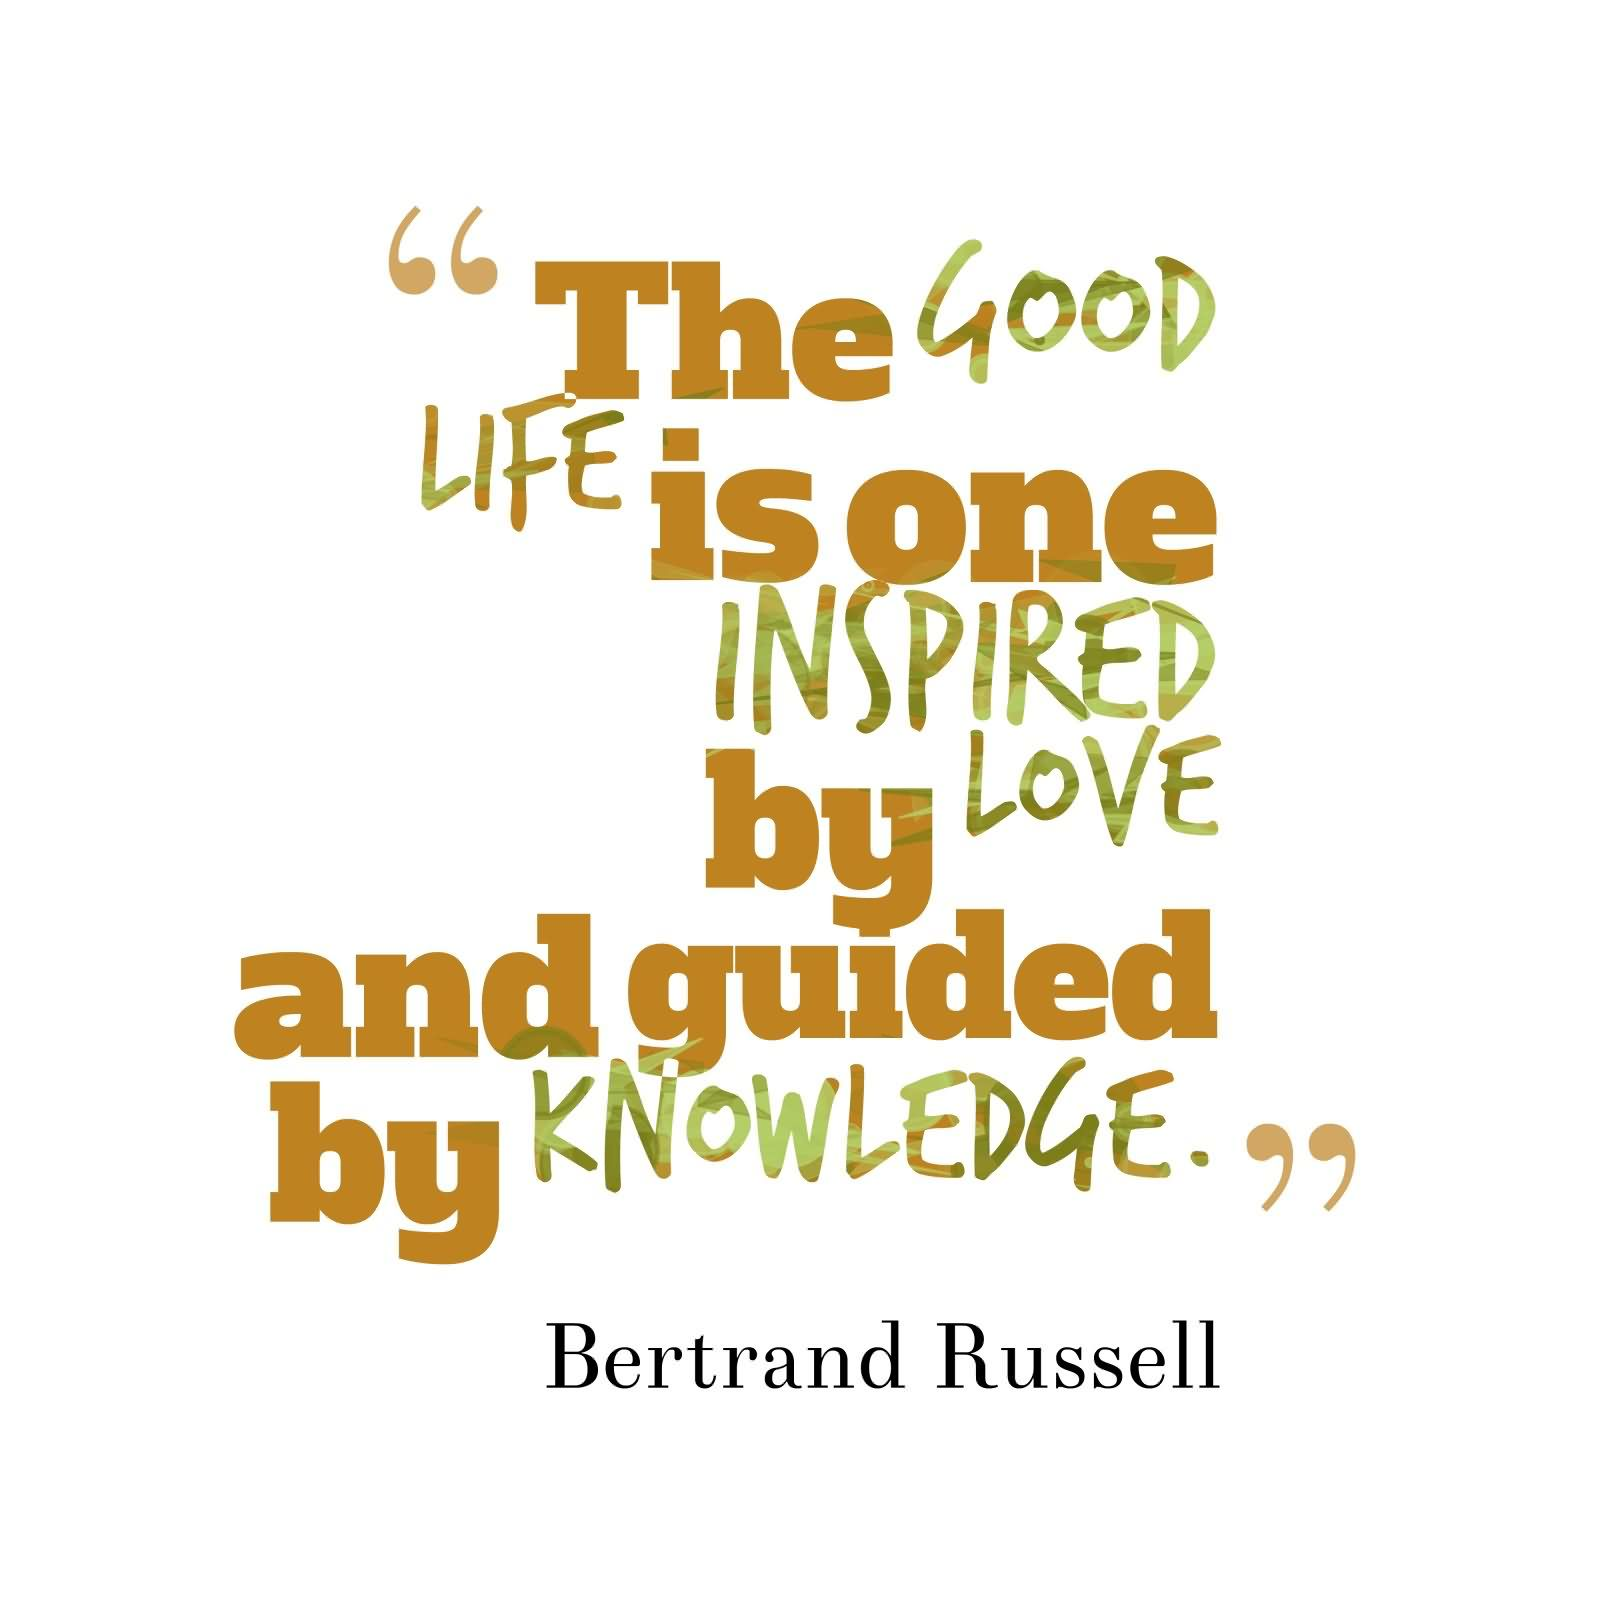 The good life is one inspired by love and guided by knowledge Bertrand Russell